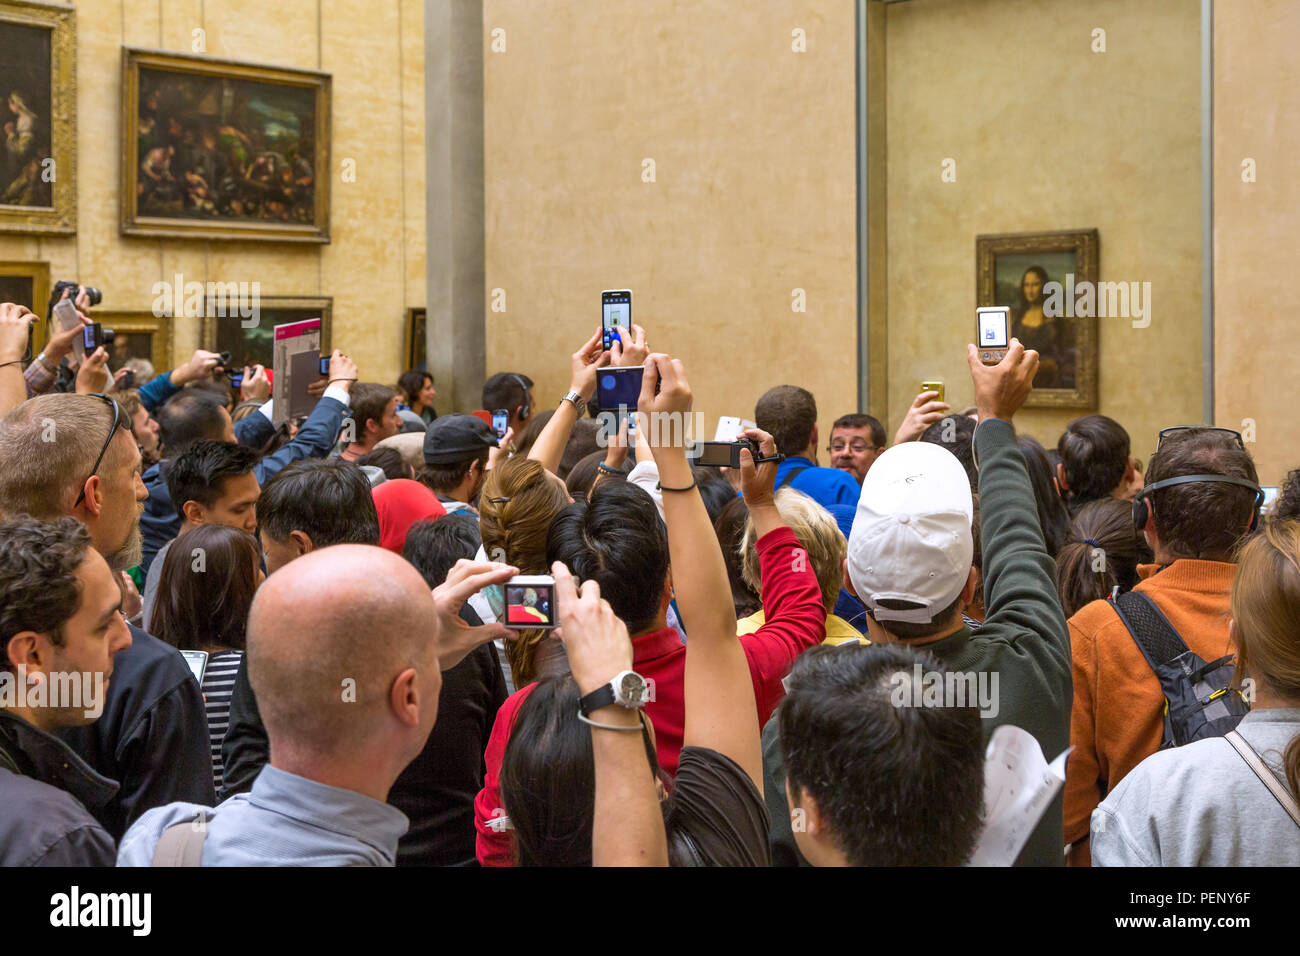 Crowd surrounding the Mona Lisa painting, Musee du Louvre, Paris, France - Stock Image